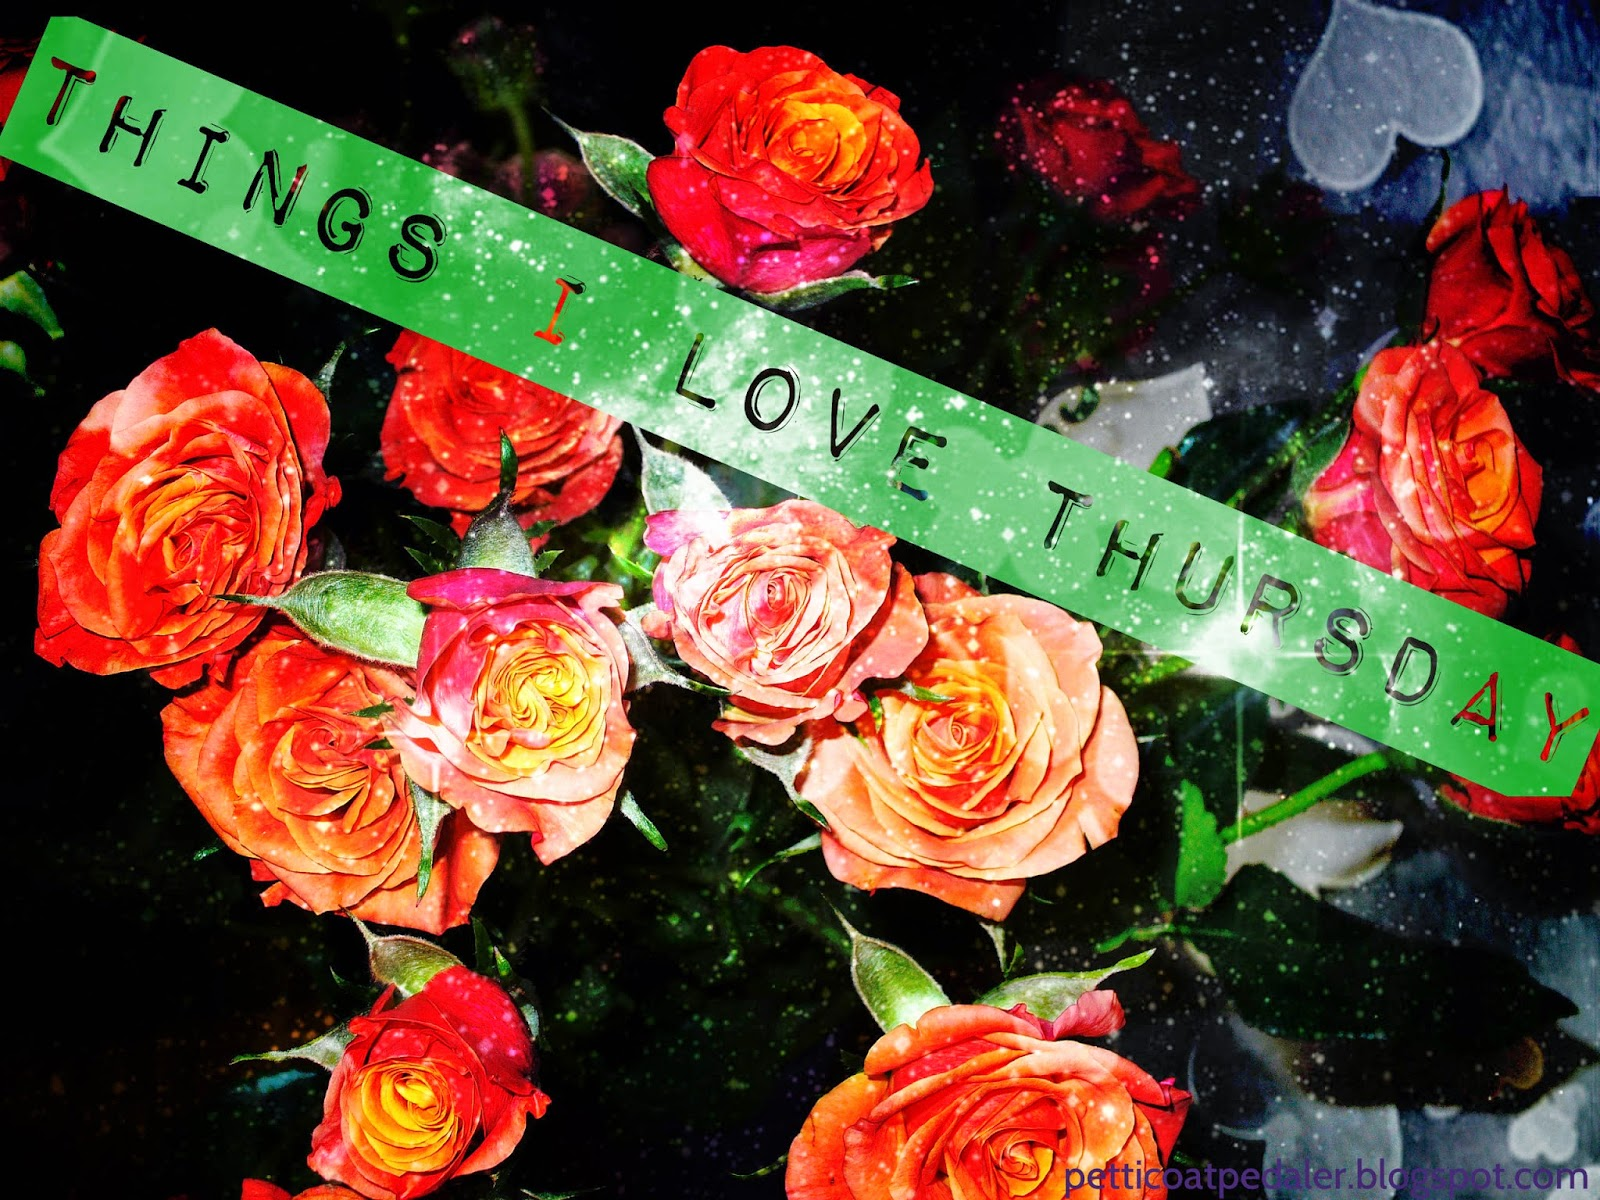 Things I Love Thursday banner across a background of Flowers and stars.